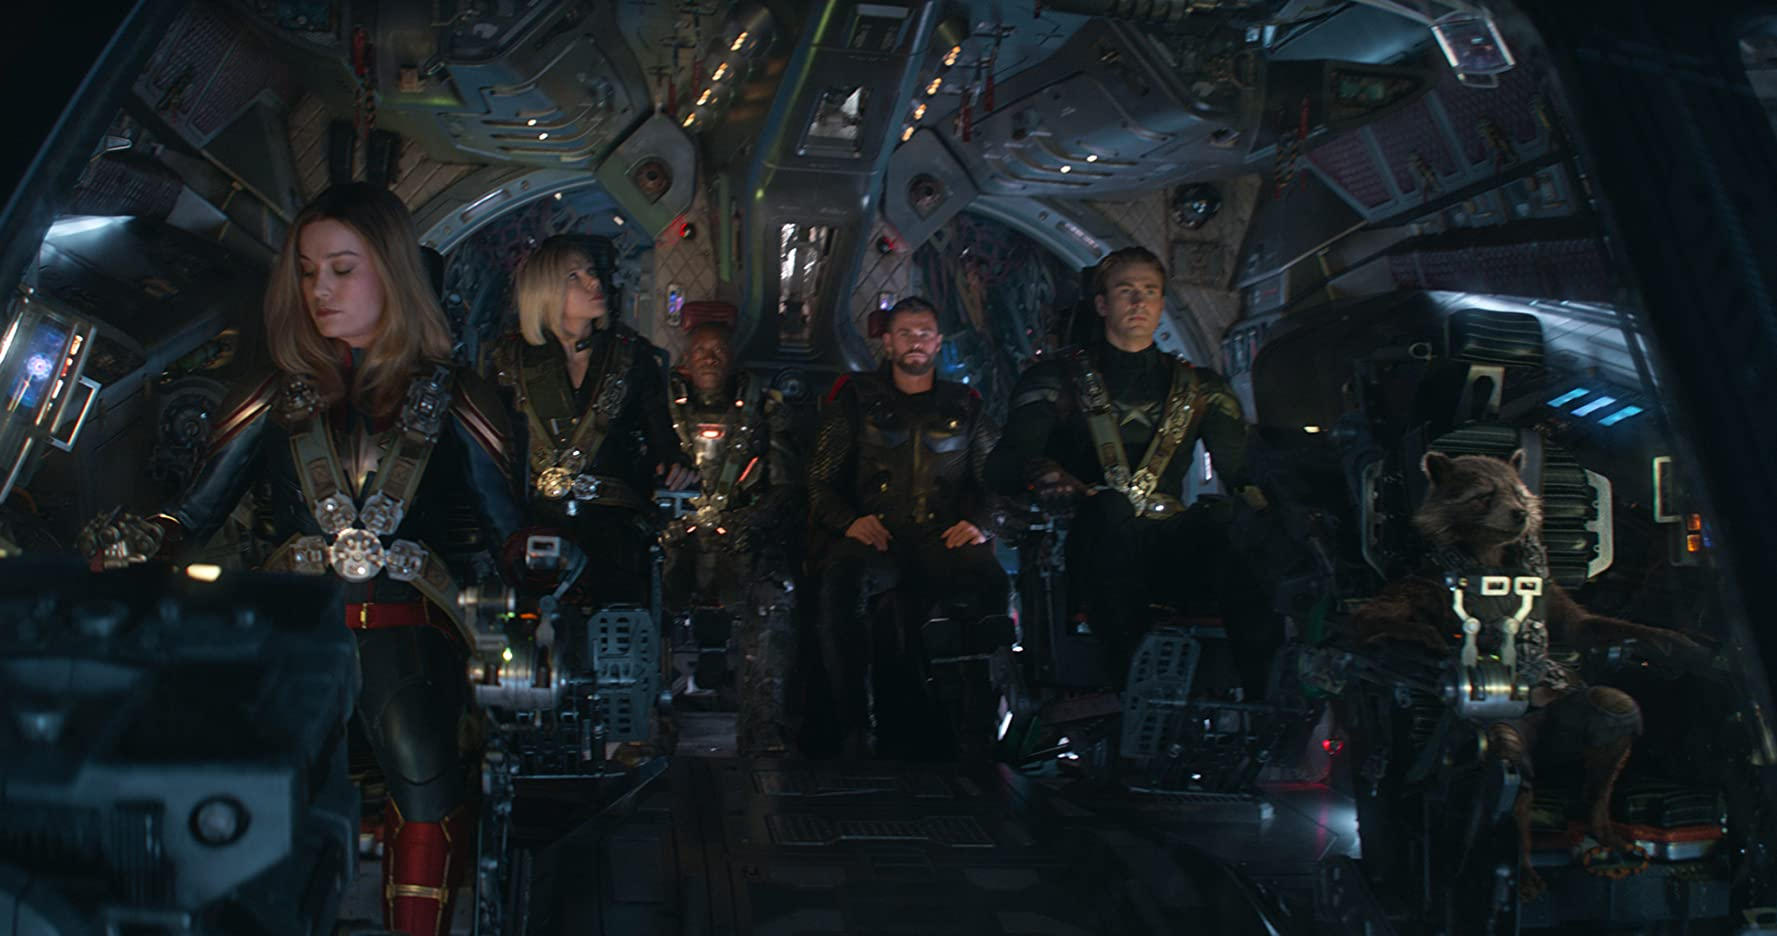 Don Cheadle, Bradley Cooper, Chris Evans, Scarlett Johansson, Brie Larson, and Chris Hemsworth in Avengers: Endgame (2019)